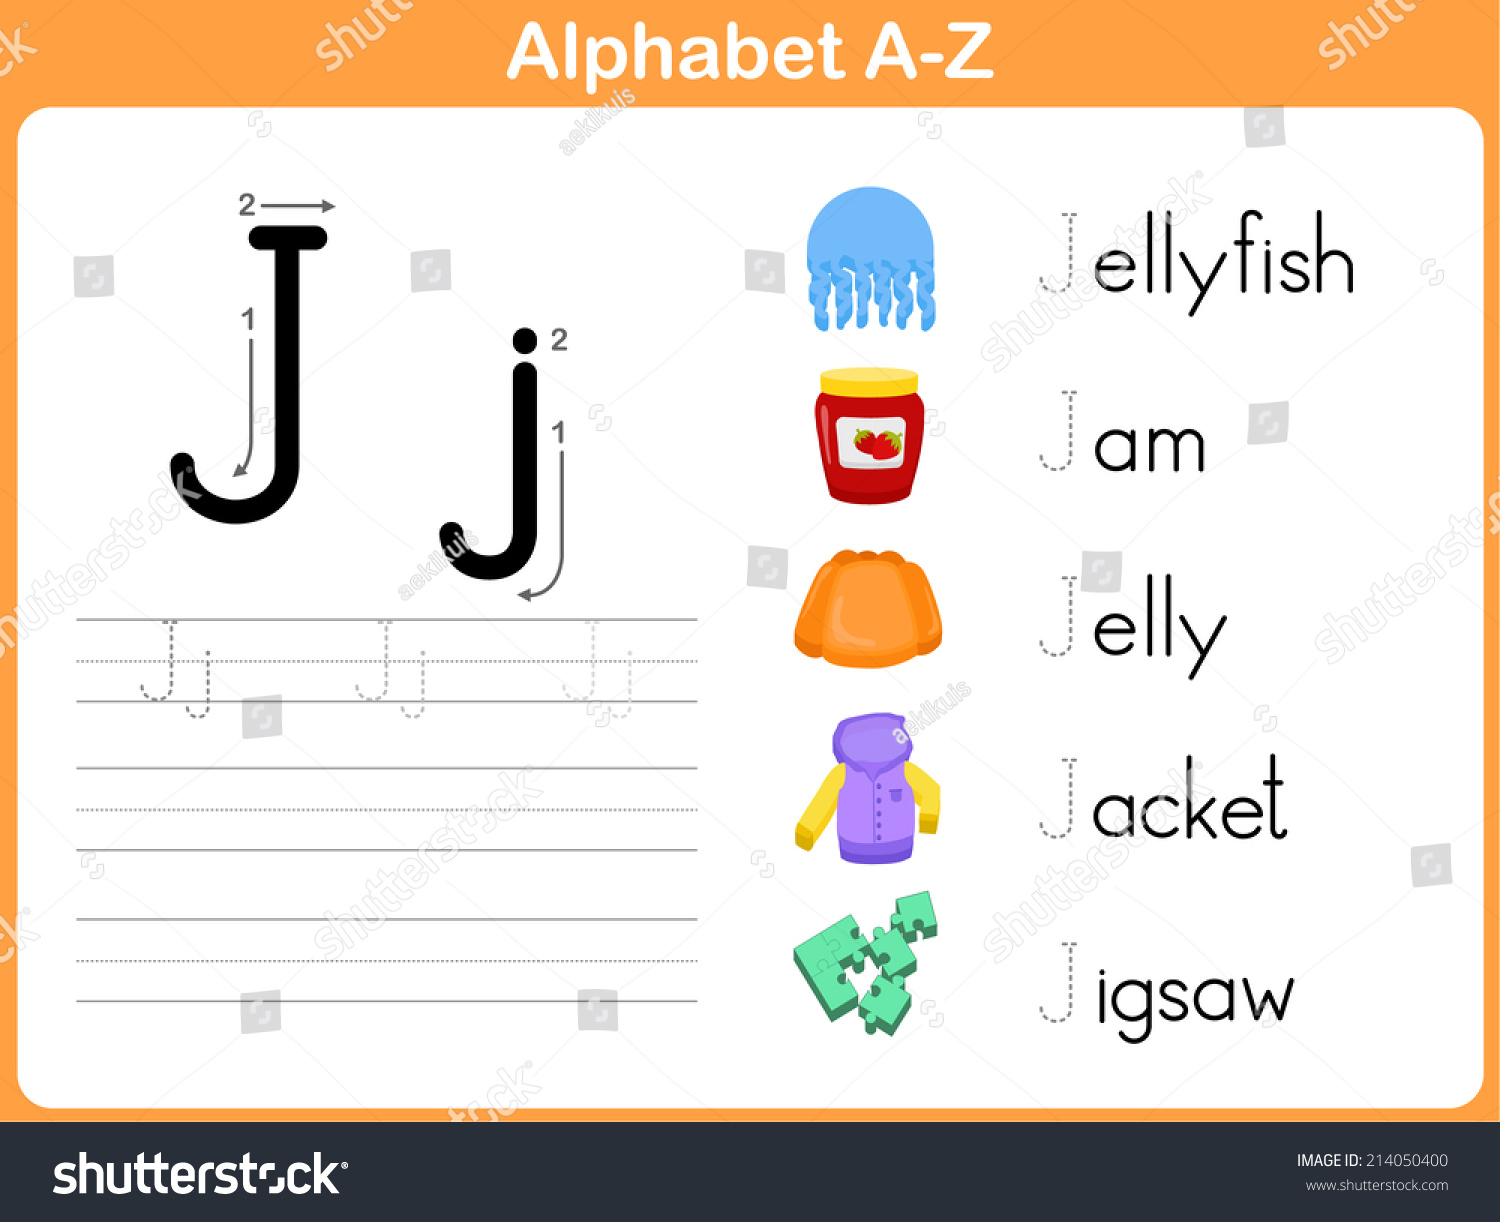 Alphabet Worksheets Az : Alphabet worksheets a z tracing worksheet